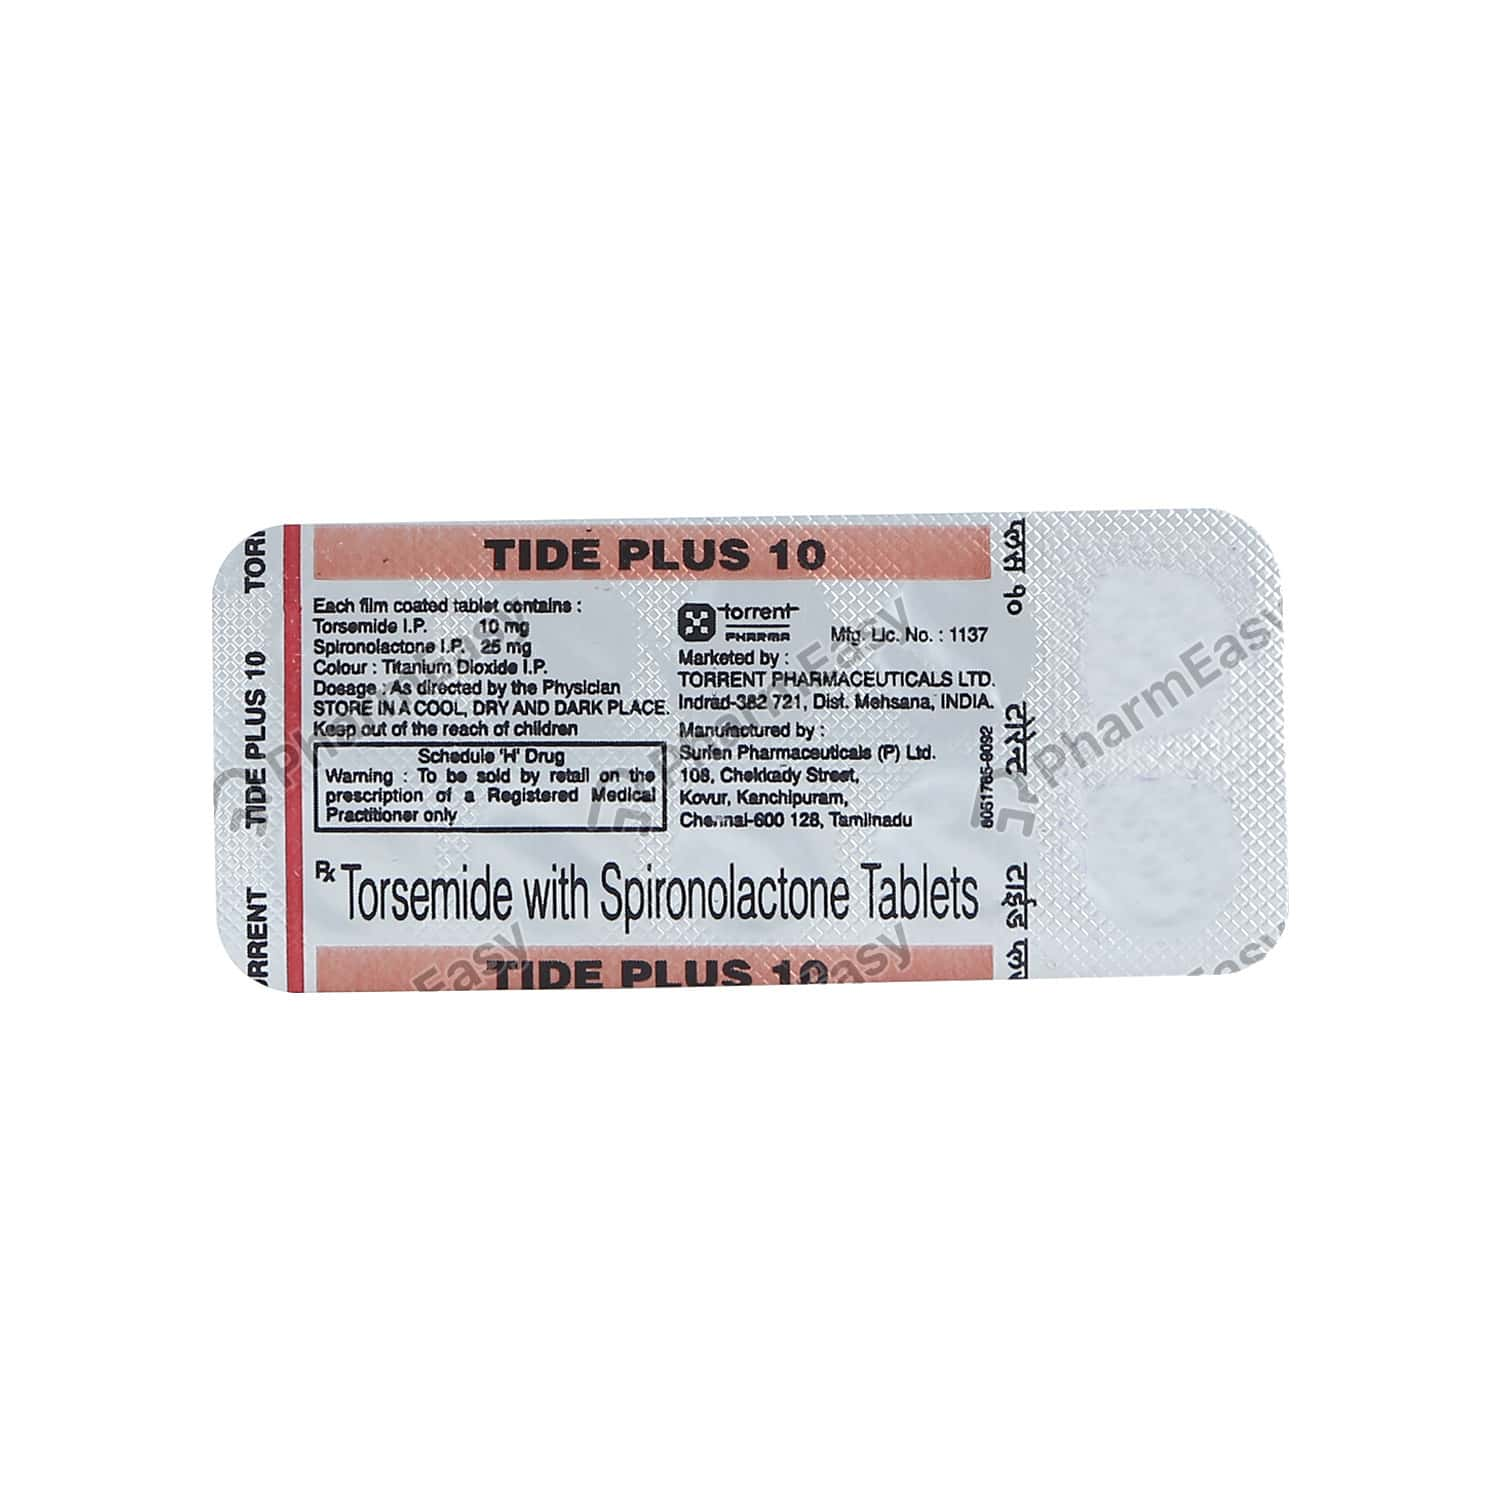 Tide Plus 10mg Strip Of 10 Tablets